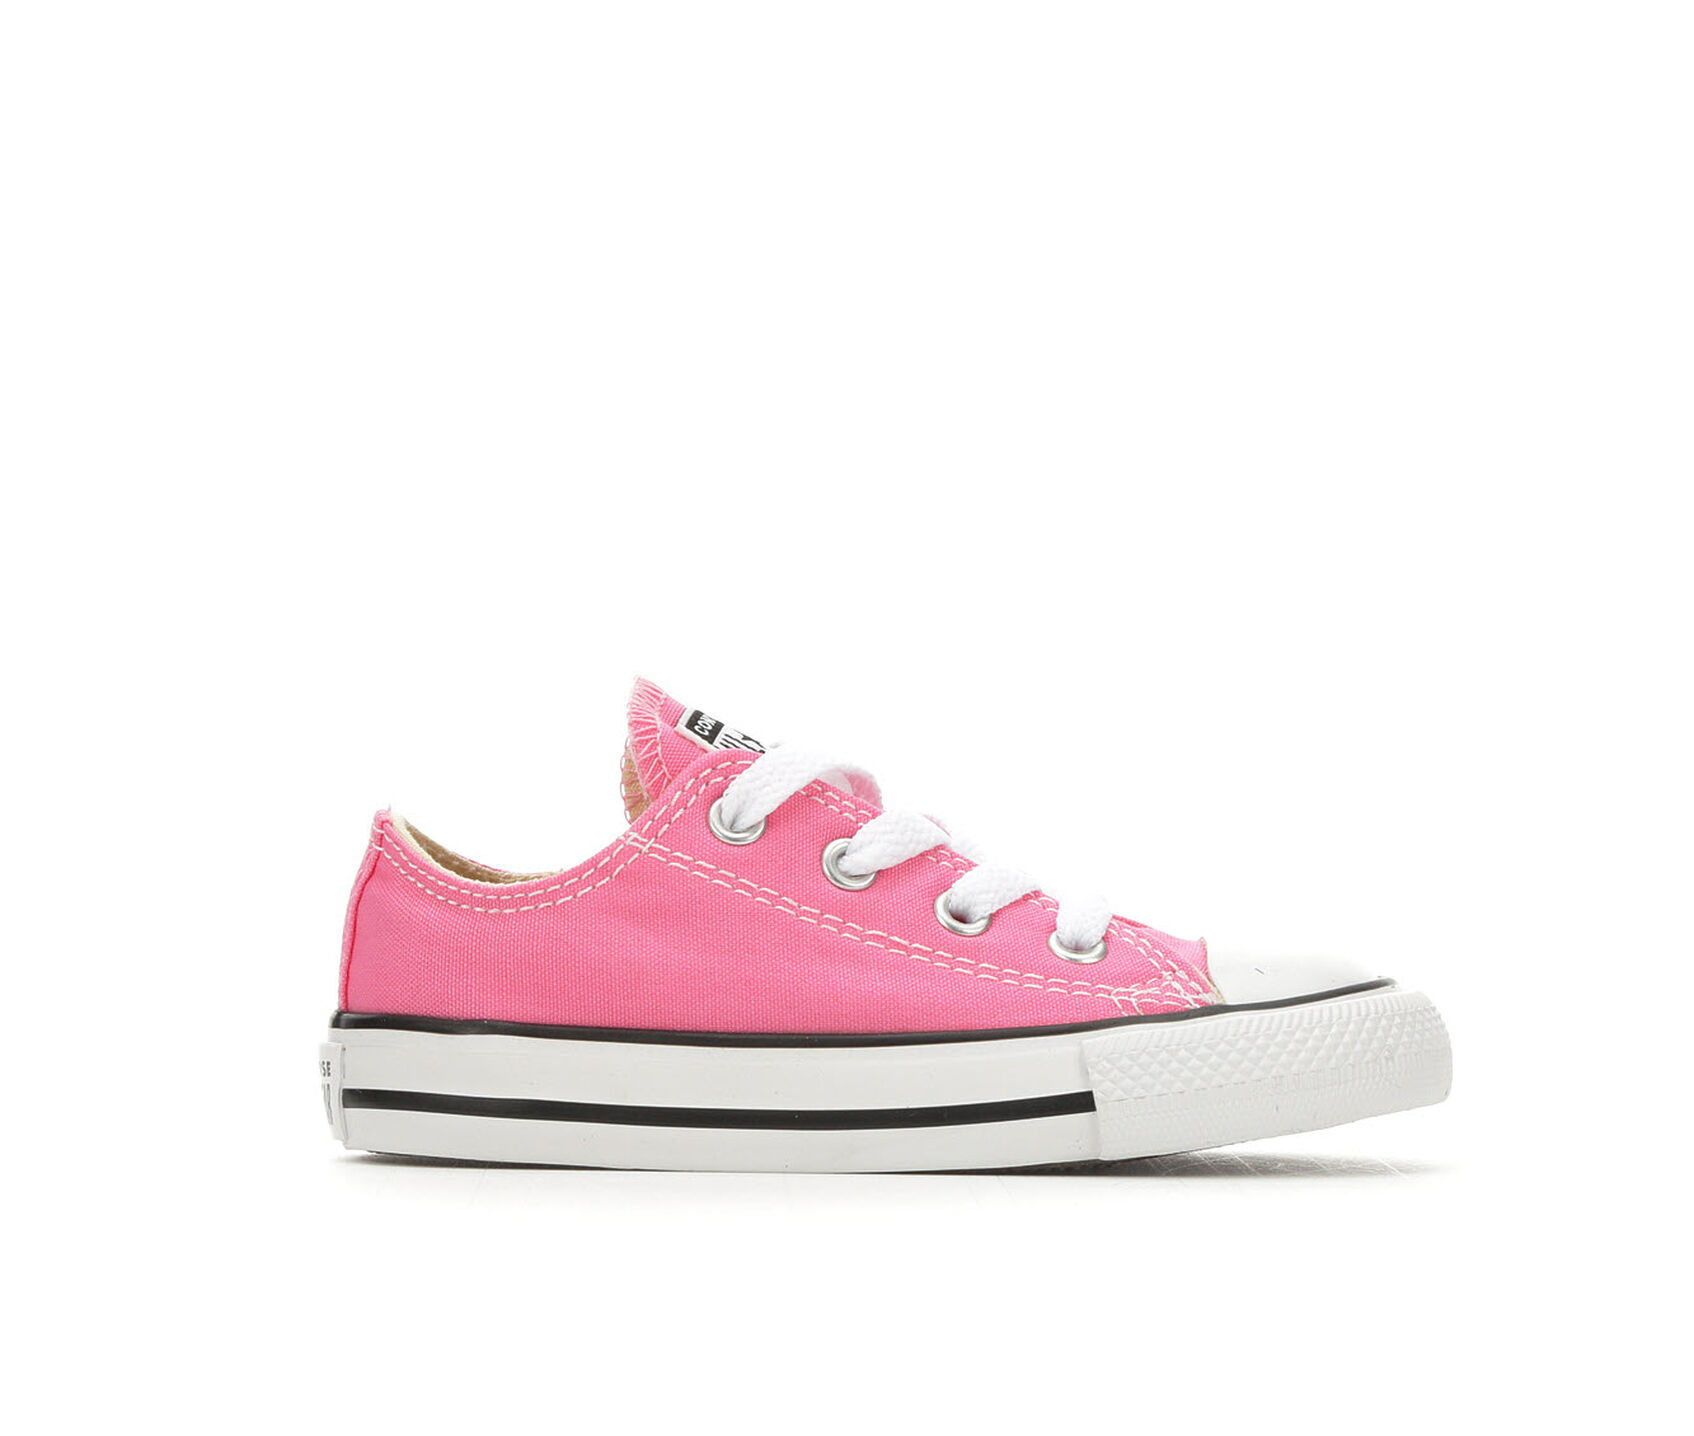 ced27aa63776 ... Converse Infant  amp  Toddler Chuck Taylor All Star Ox Sneakers.  Previous